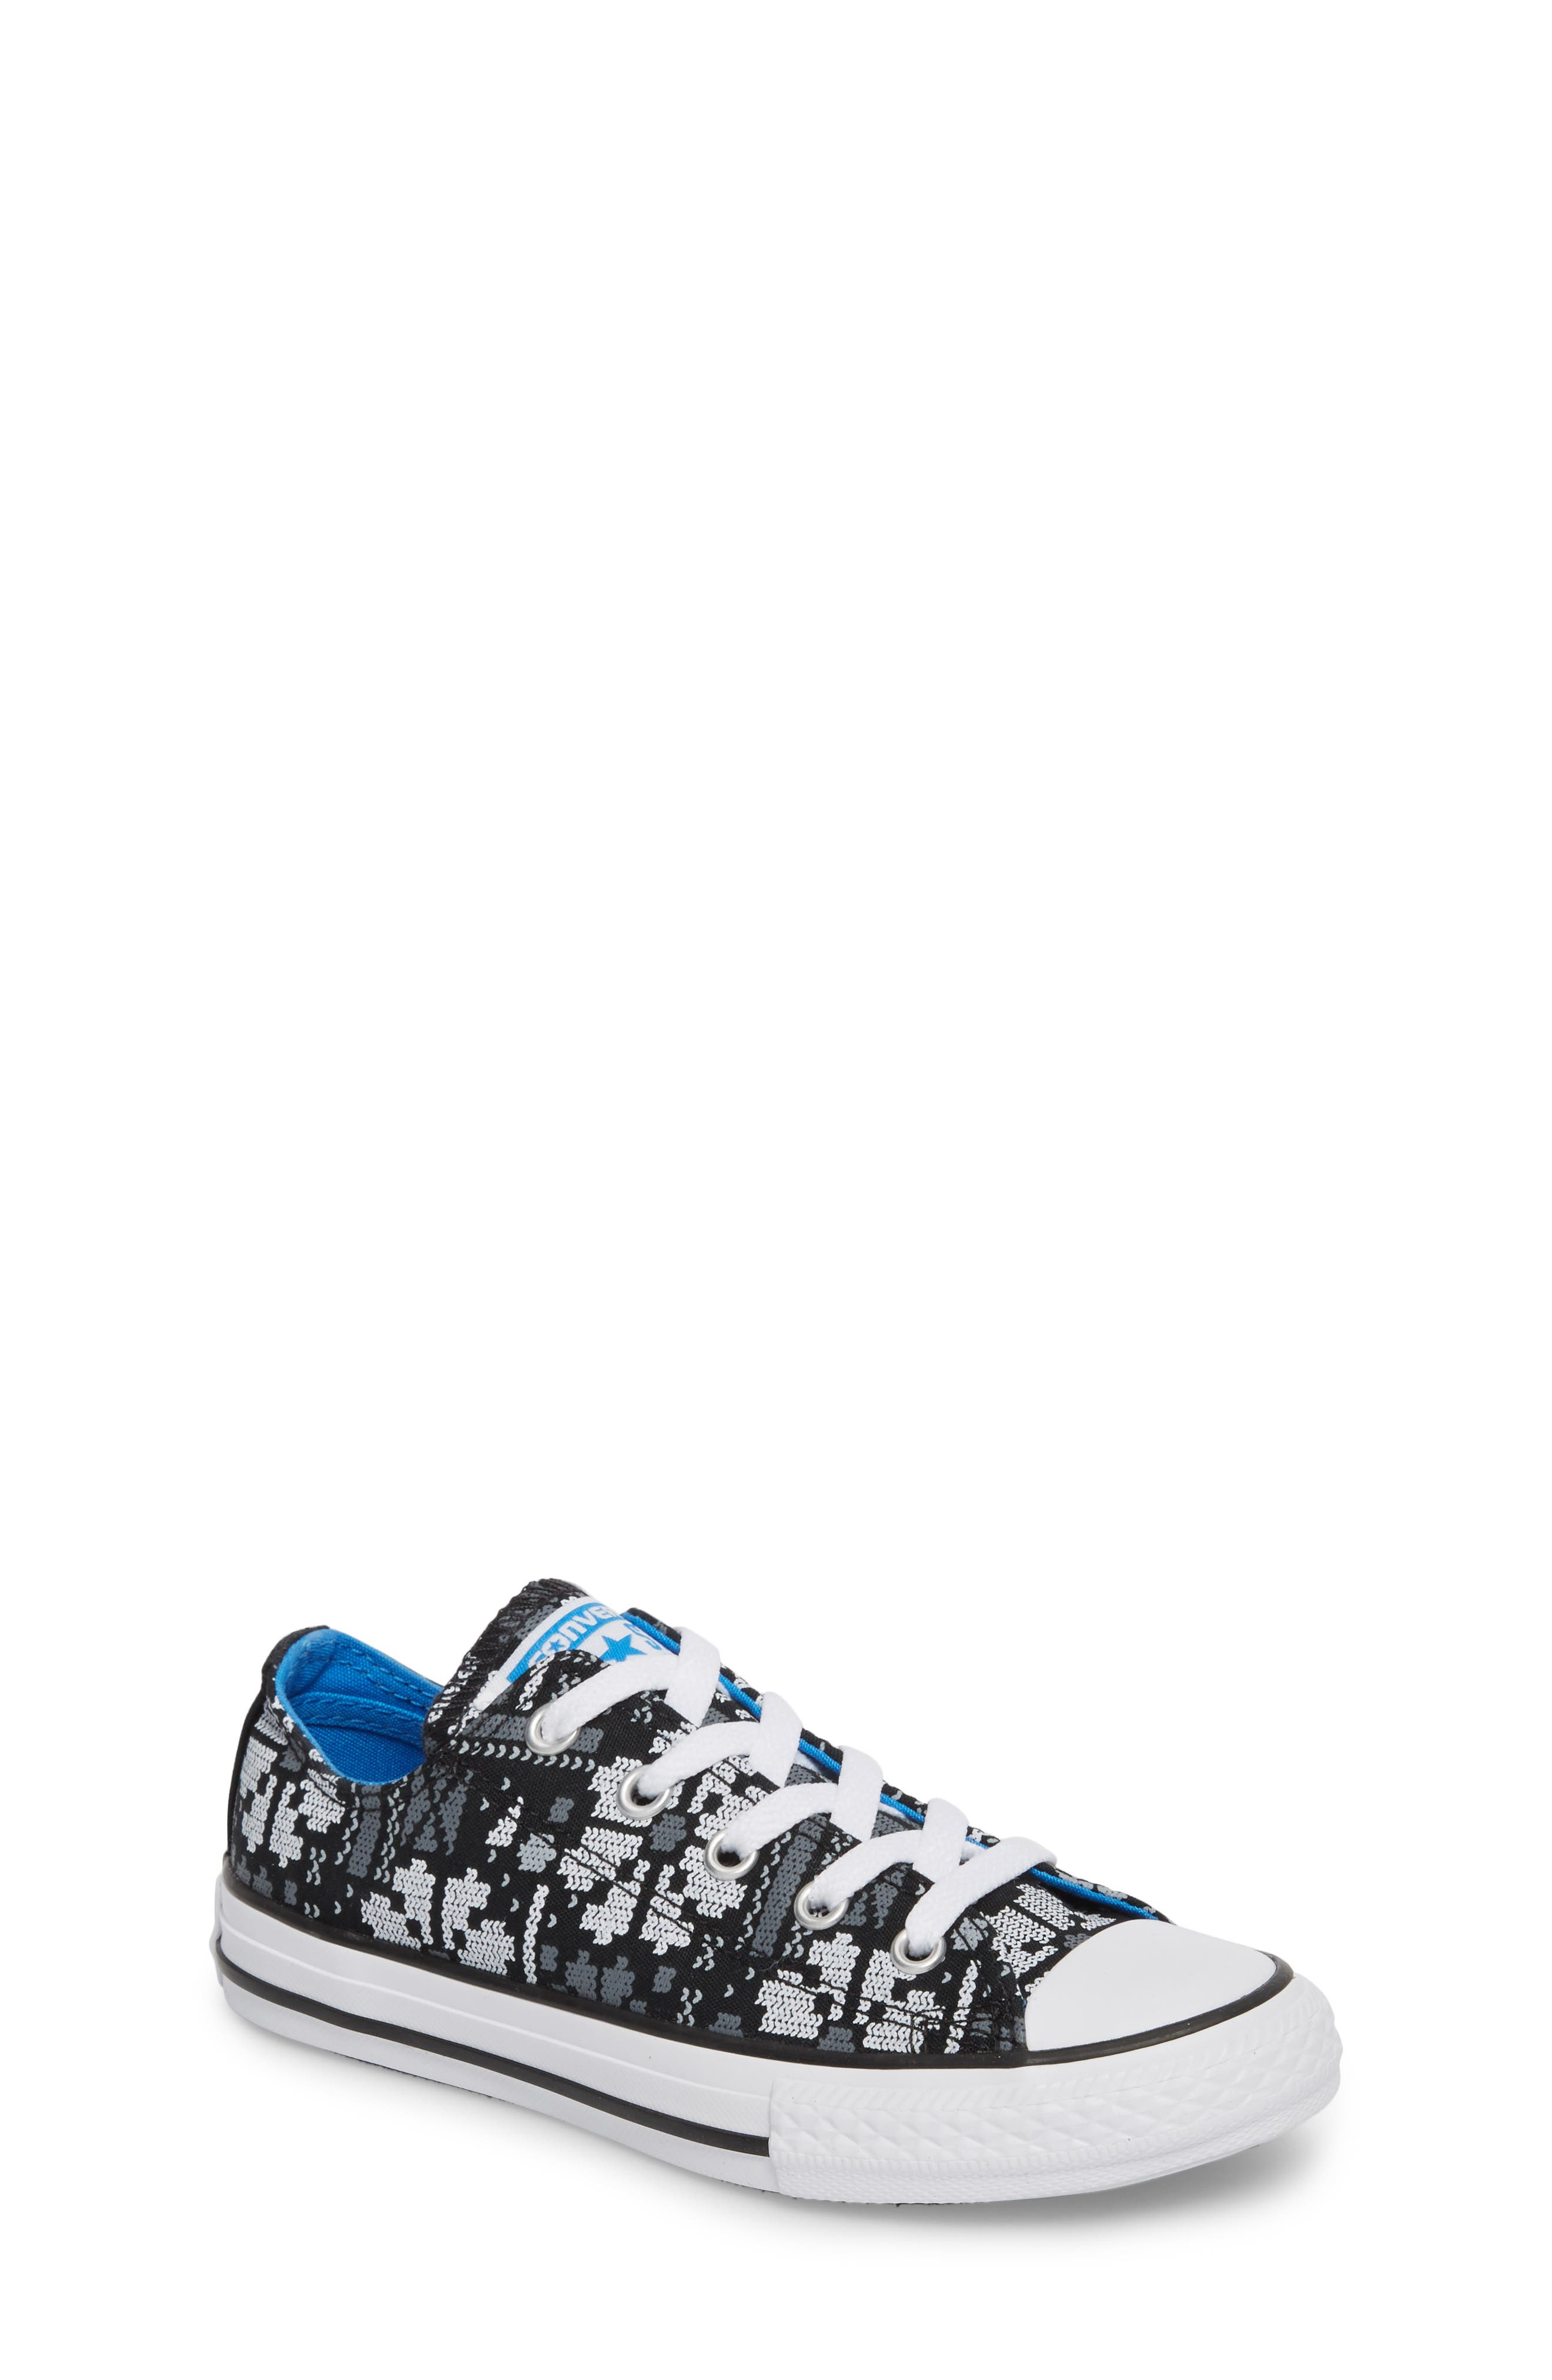 Chuck Taylor<sup>®</sup> All Star<sup>®</sup> Winter Ox Sneaker,                         Main,                         color,